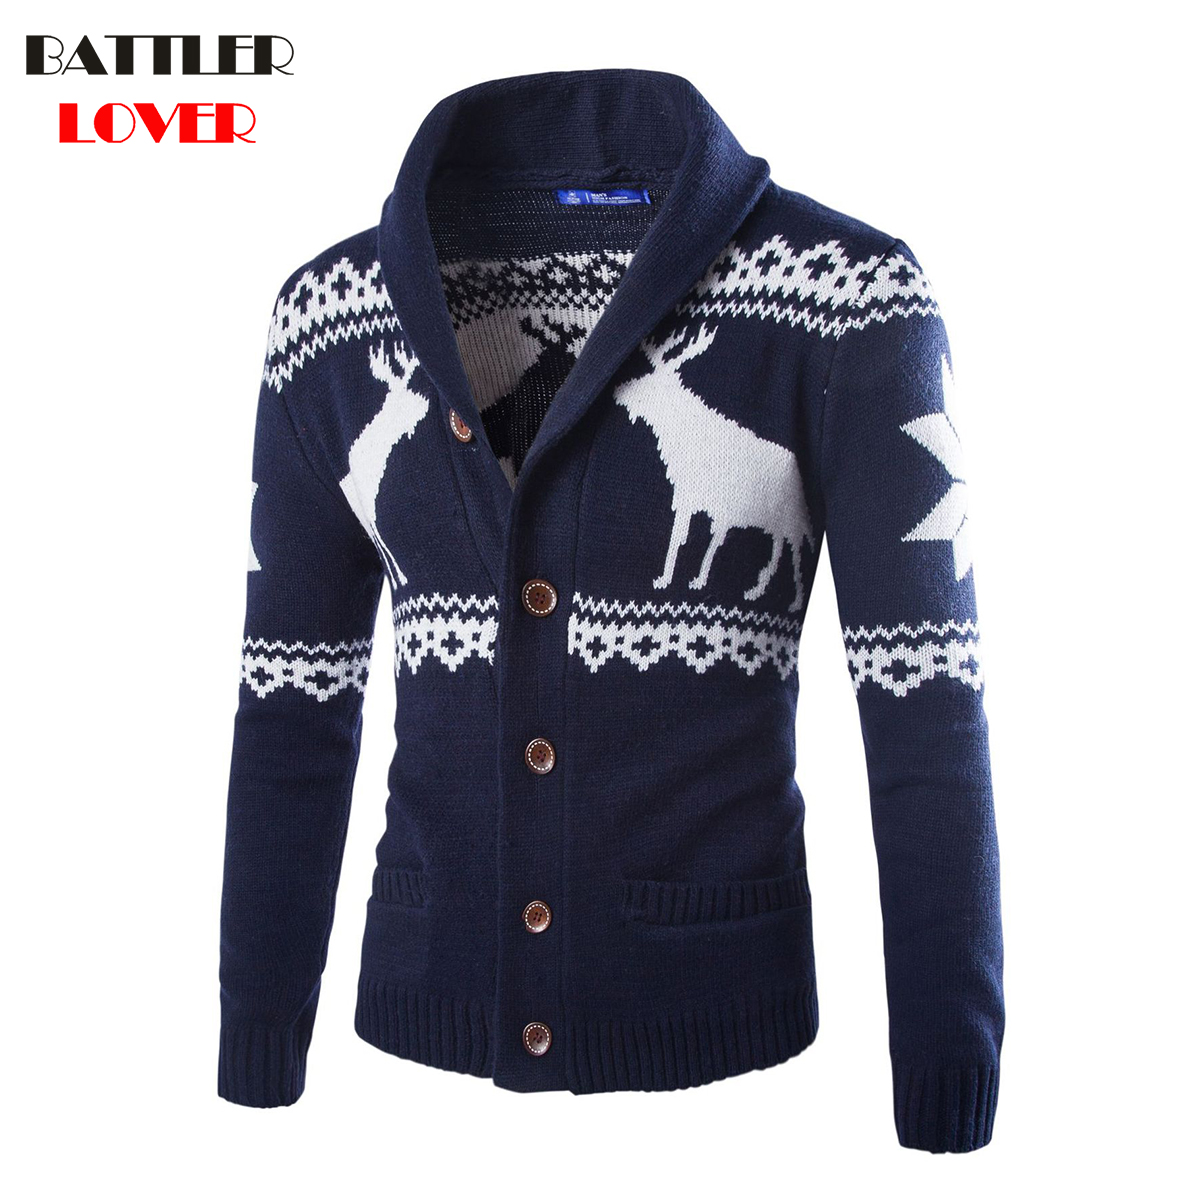 Mens Sweaters Christmas Deer Men Winter Thick Warm Clothes Casual Jacket Coat Jumper Autumn Men Outwear Sweater 2018 Cardigans